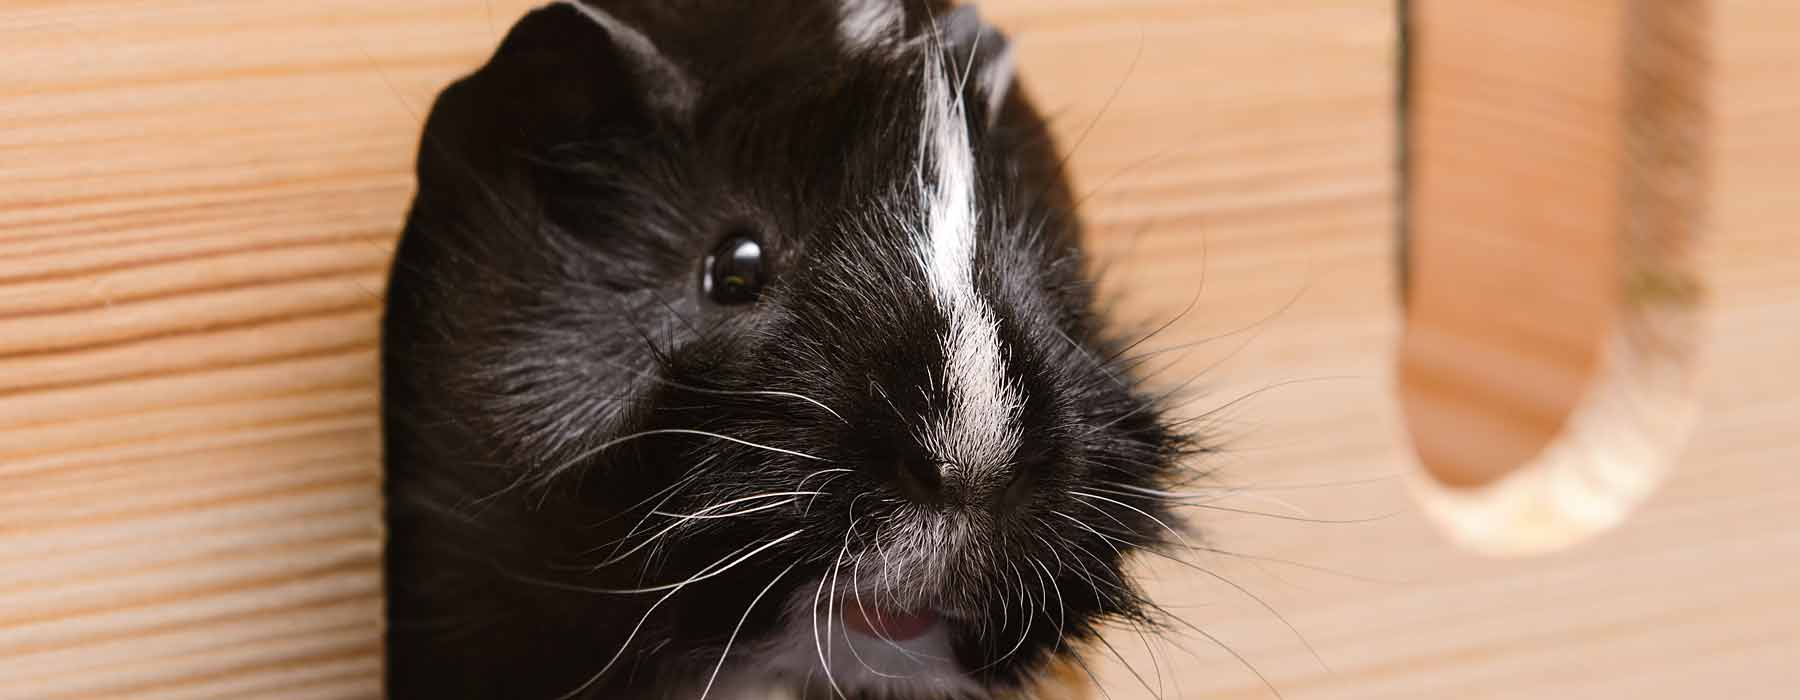 black and white guinea pig peeking out of wooden hideout